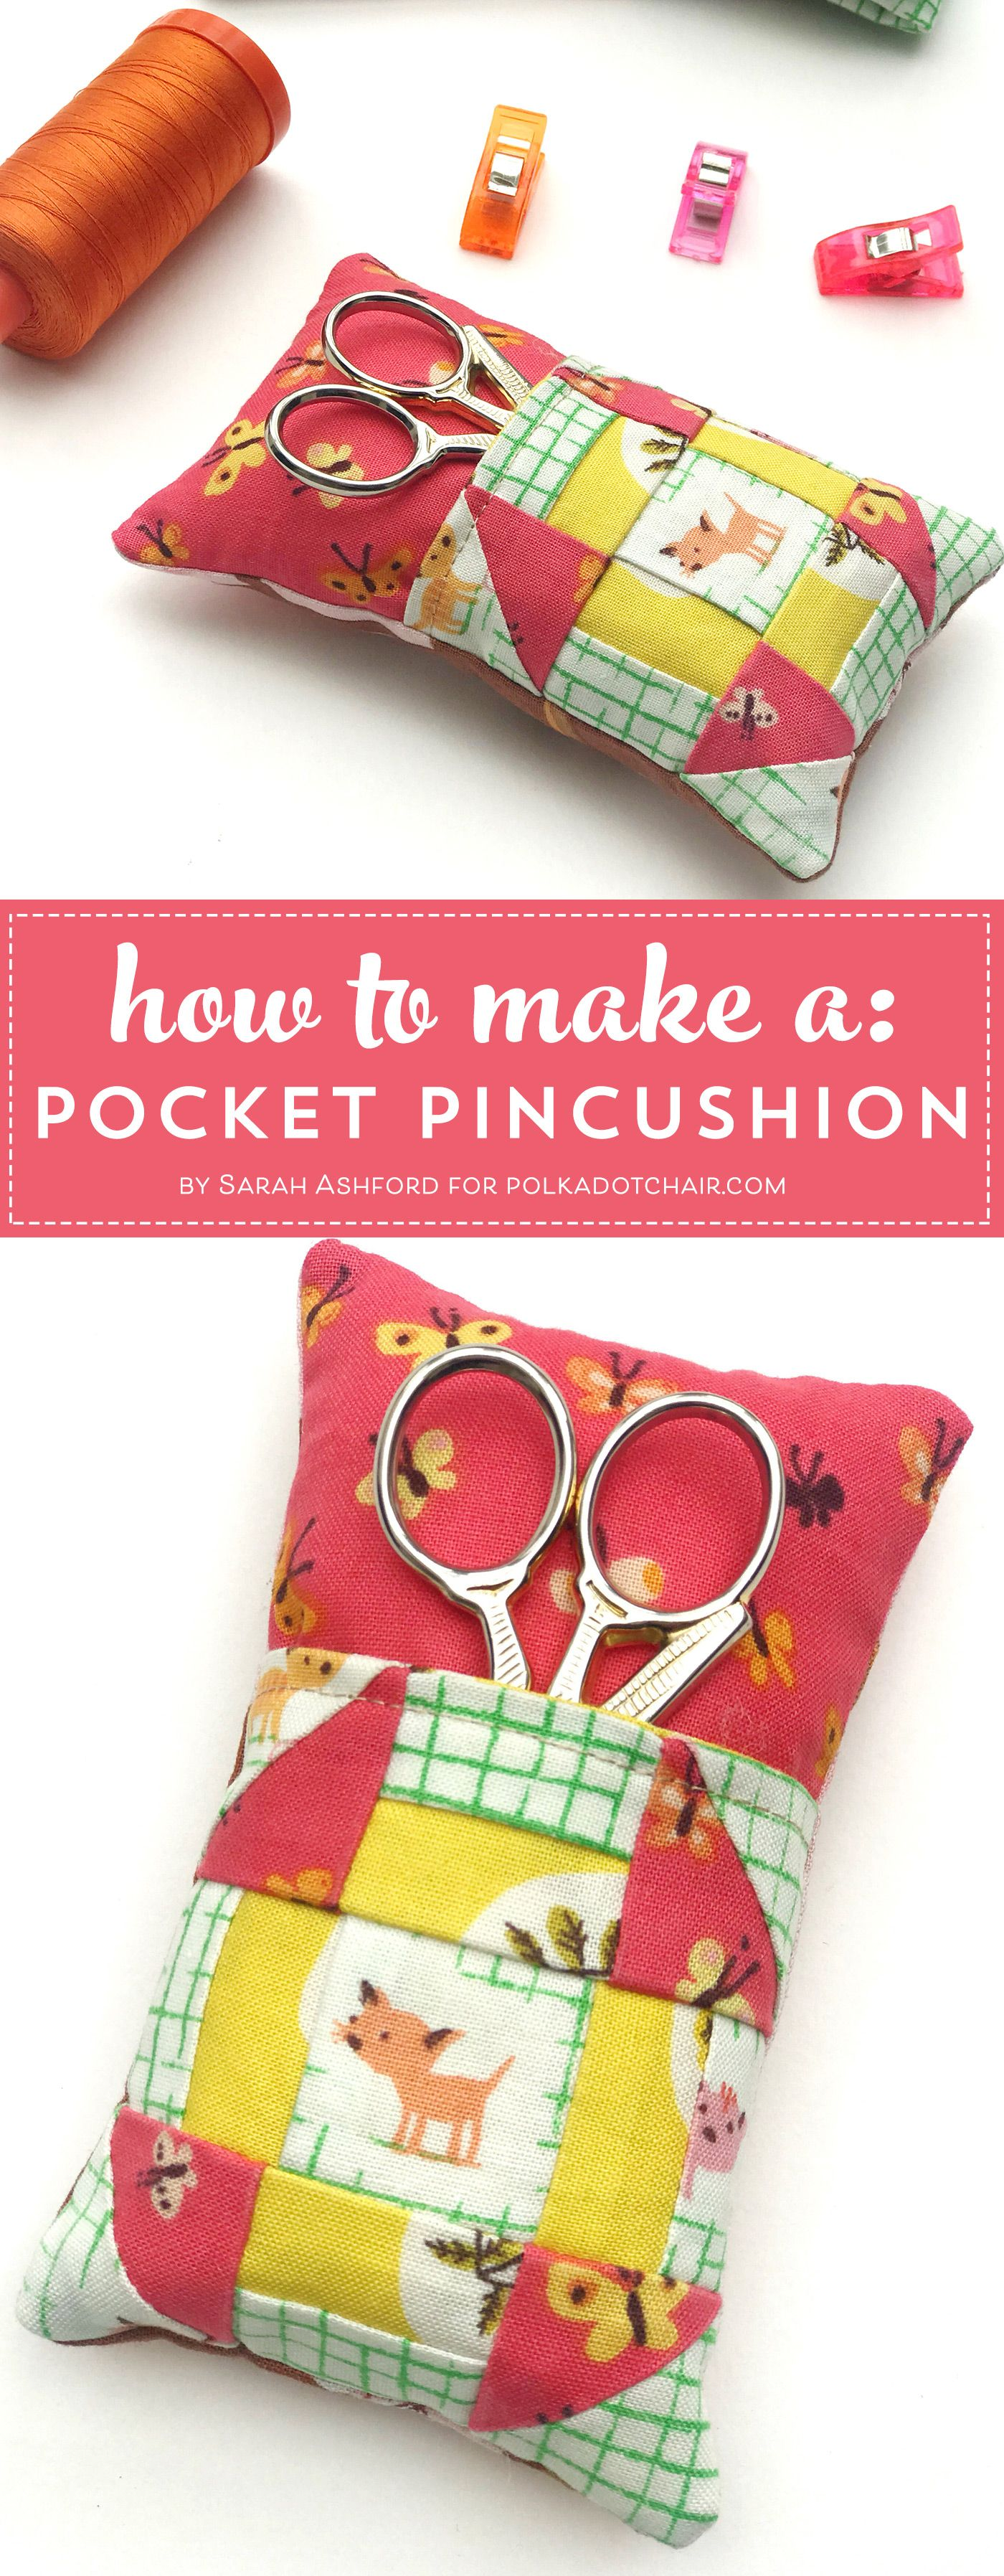 How to make your own Pincushion with a Pocket | Nähanleitung, Nähen ...